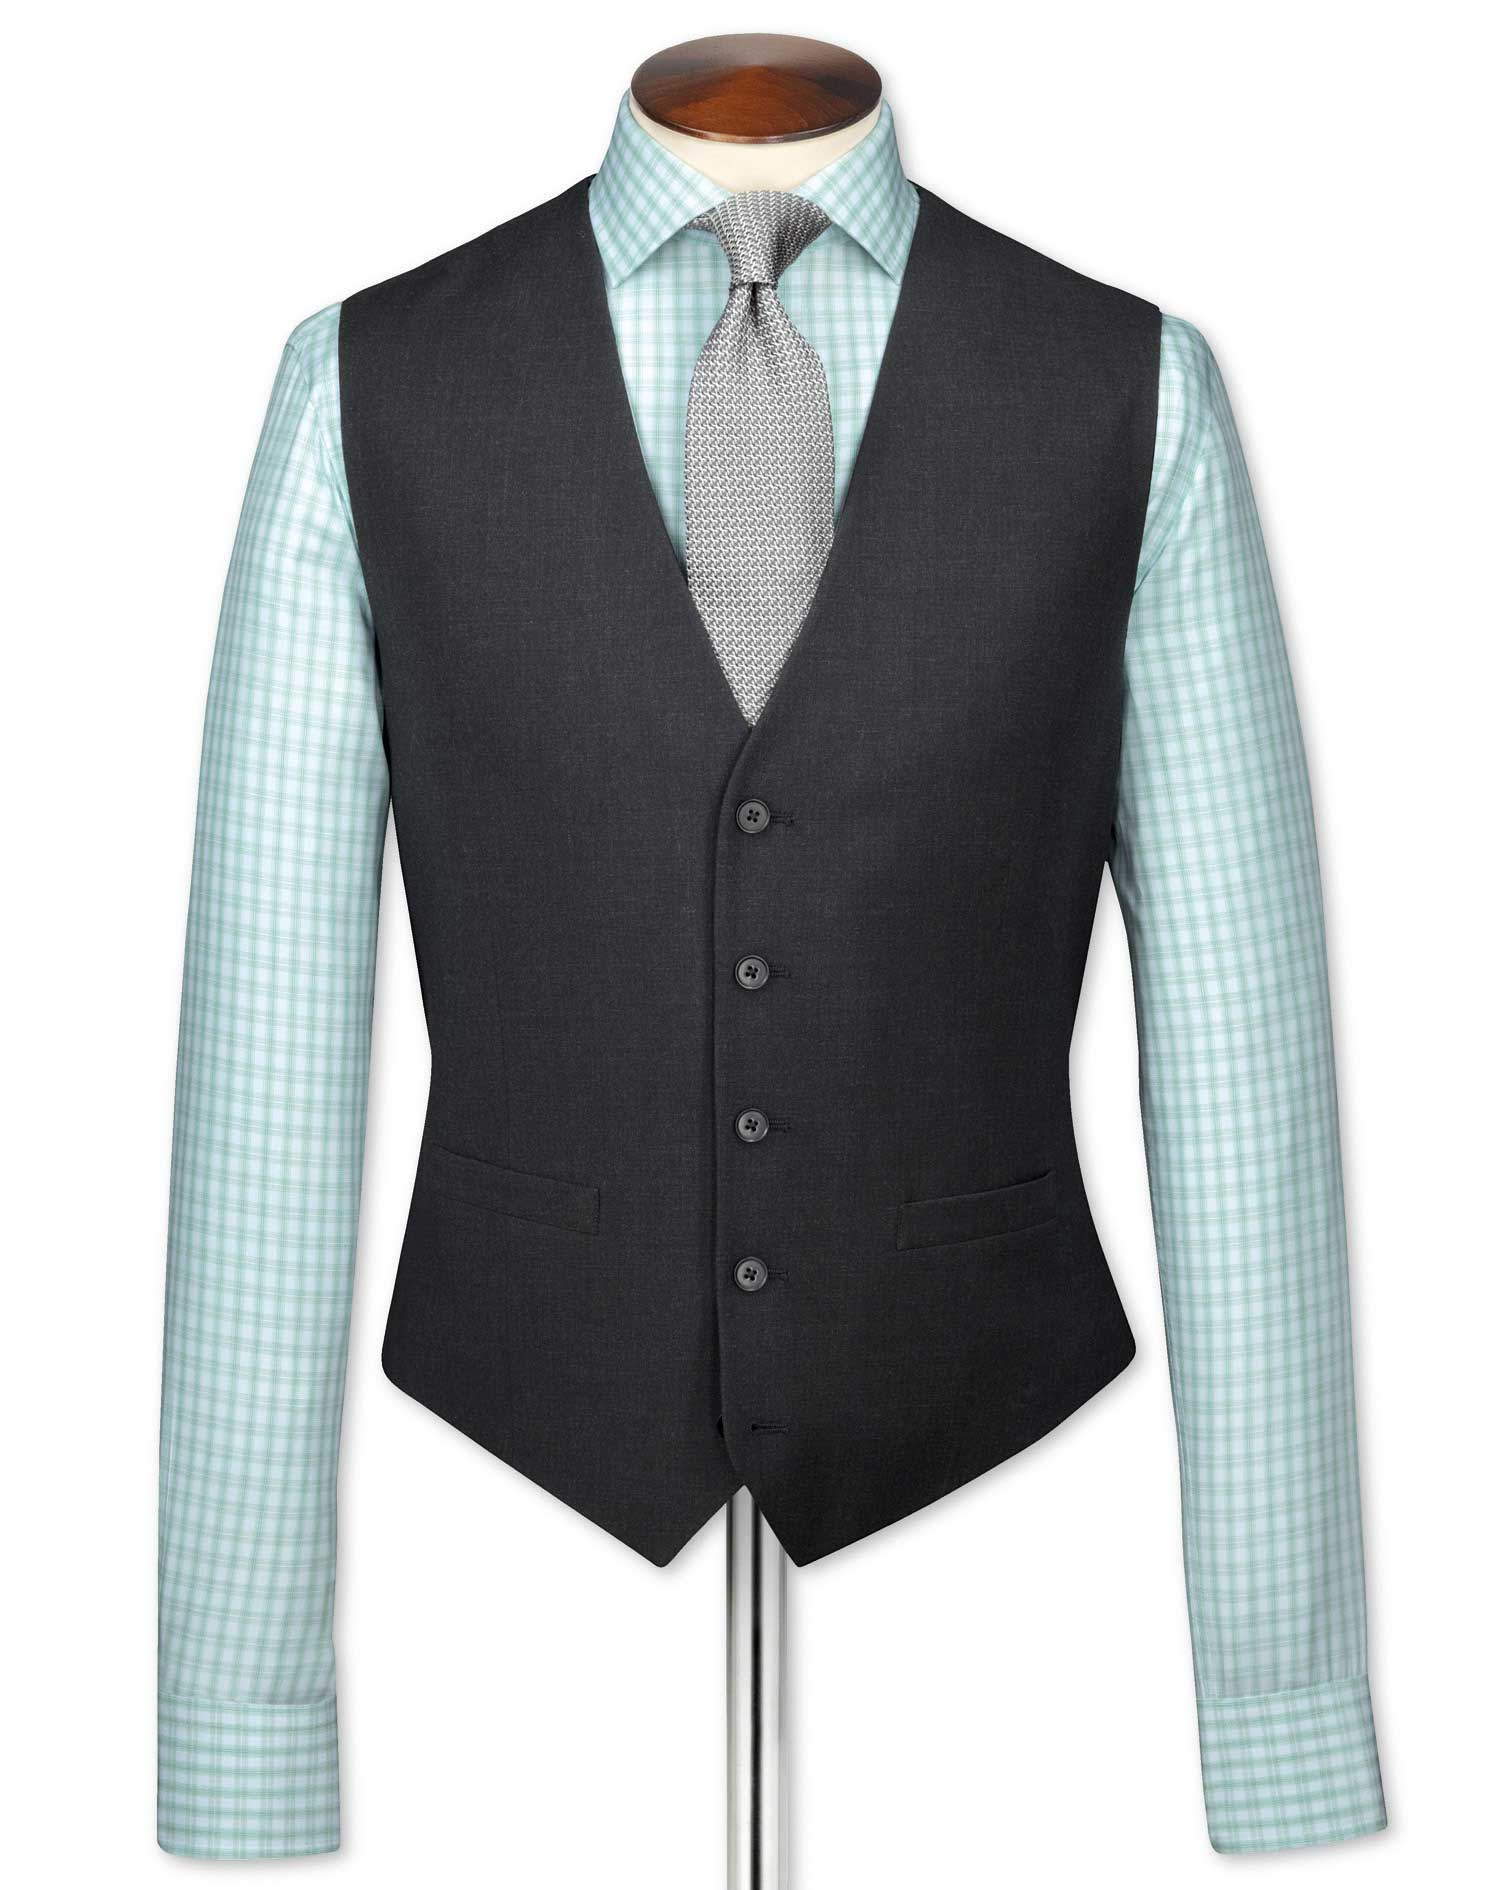 Charcoal Adjustable Fit Twill Business Suit Wool Waistcoat Size w42 by Charles Tyrwhitt